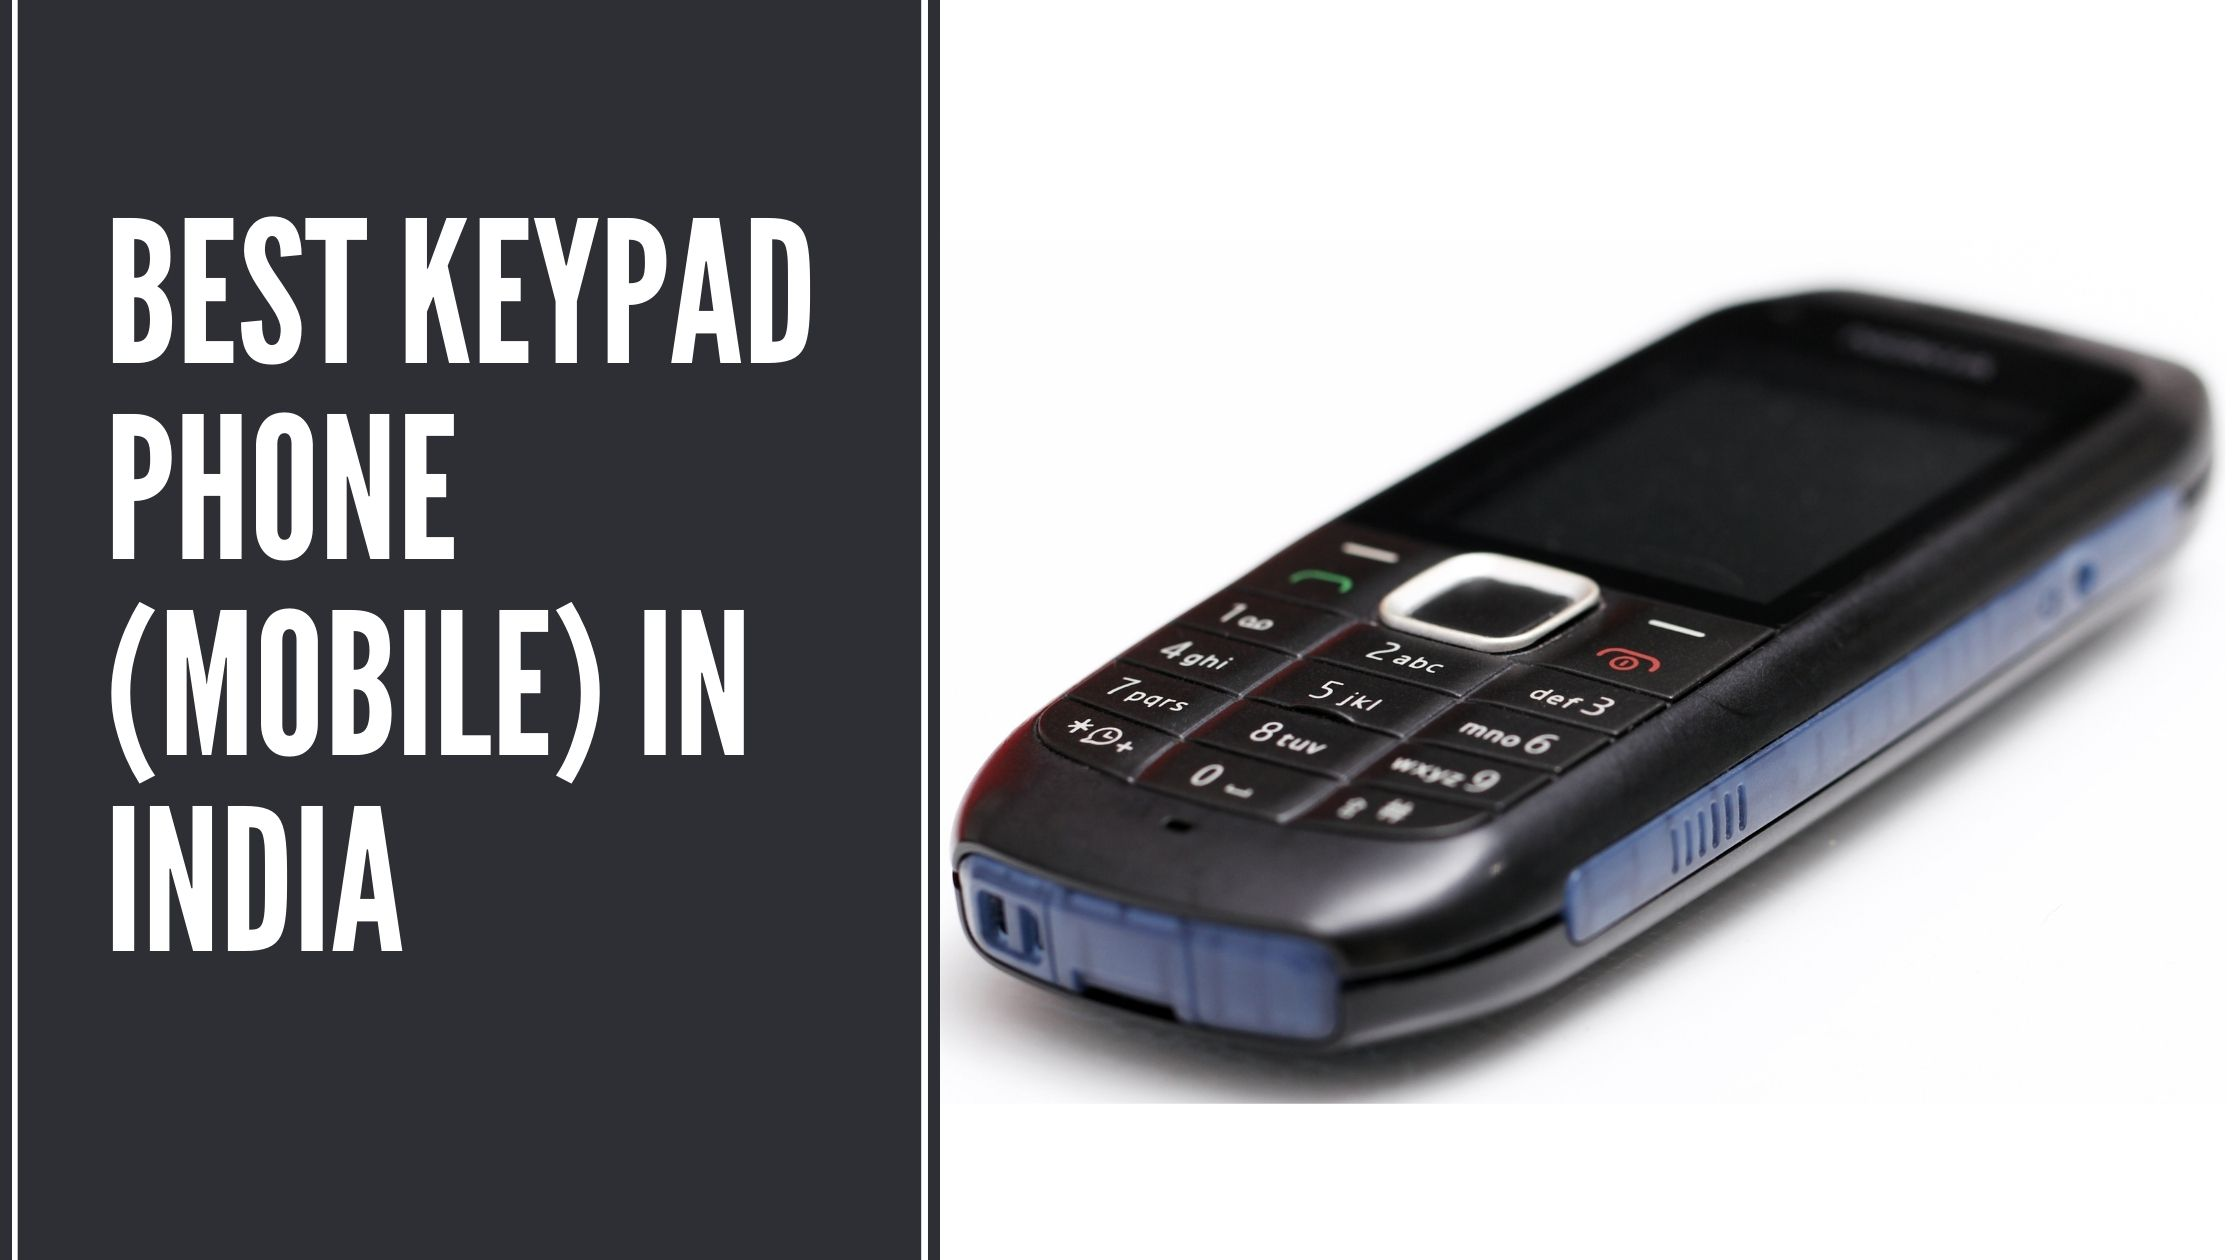 Best Keypad Phone (Mobile) in India